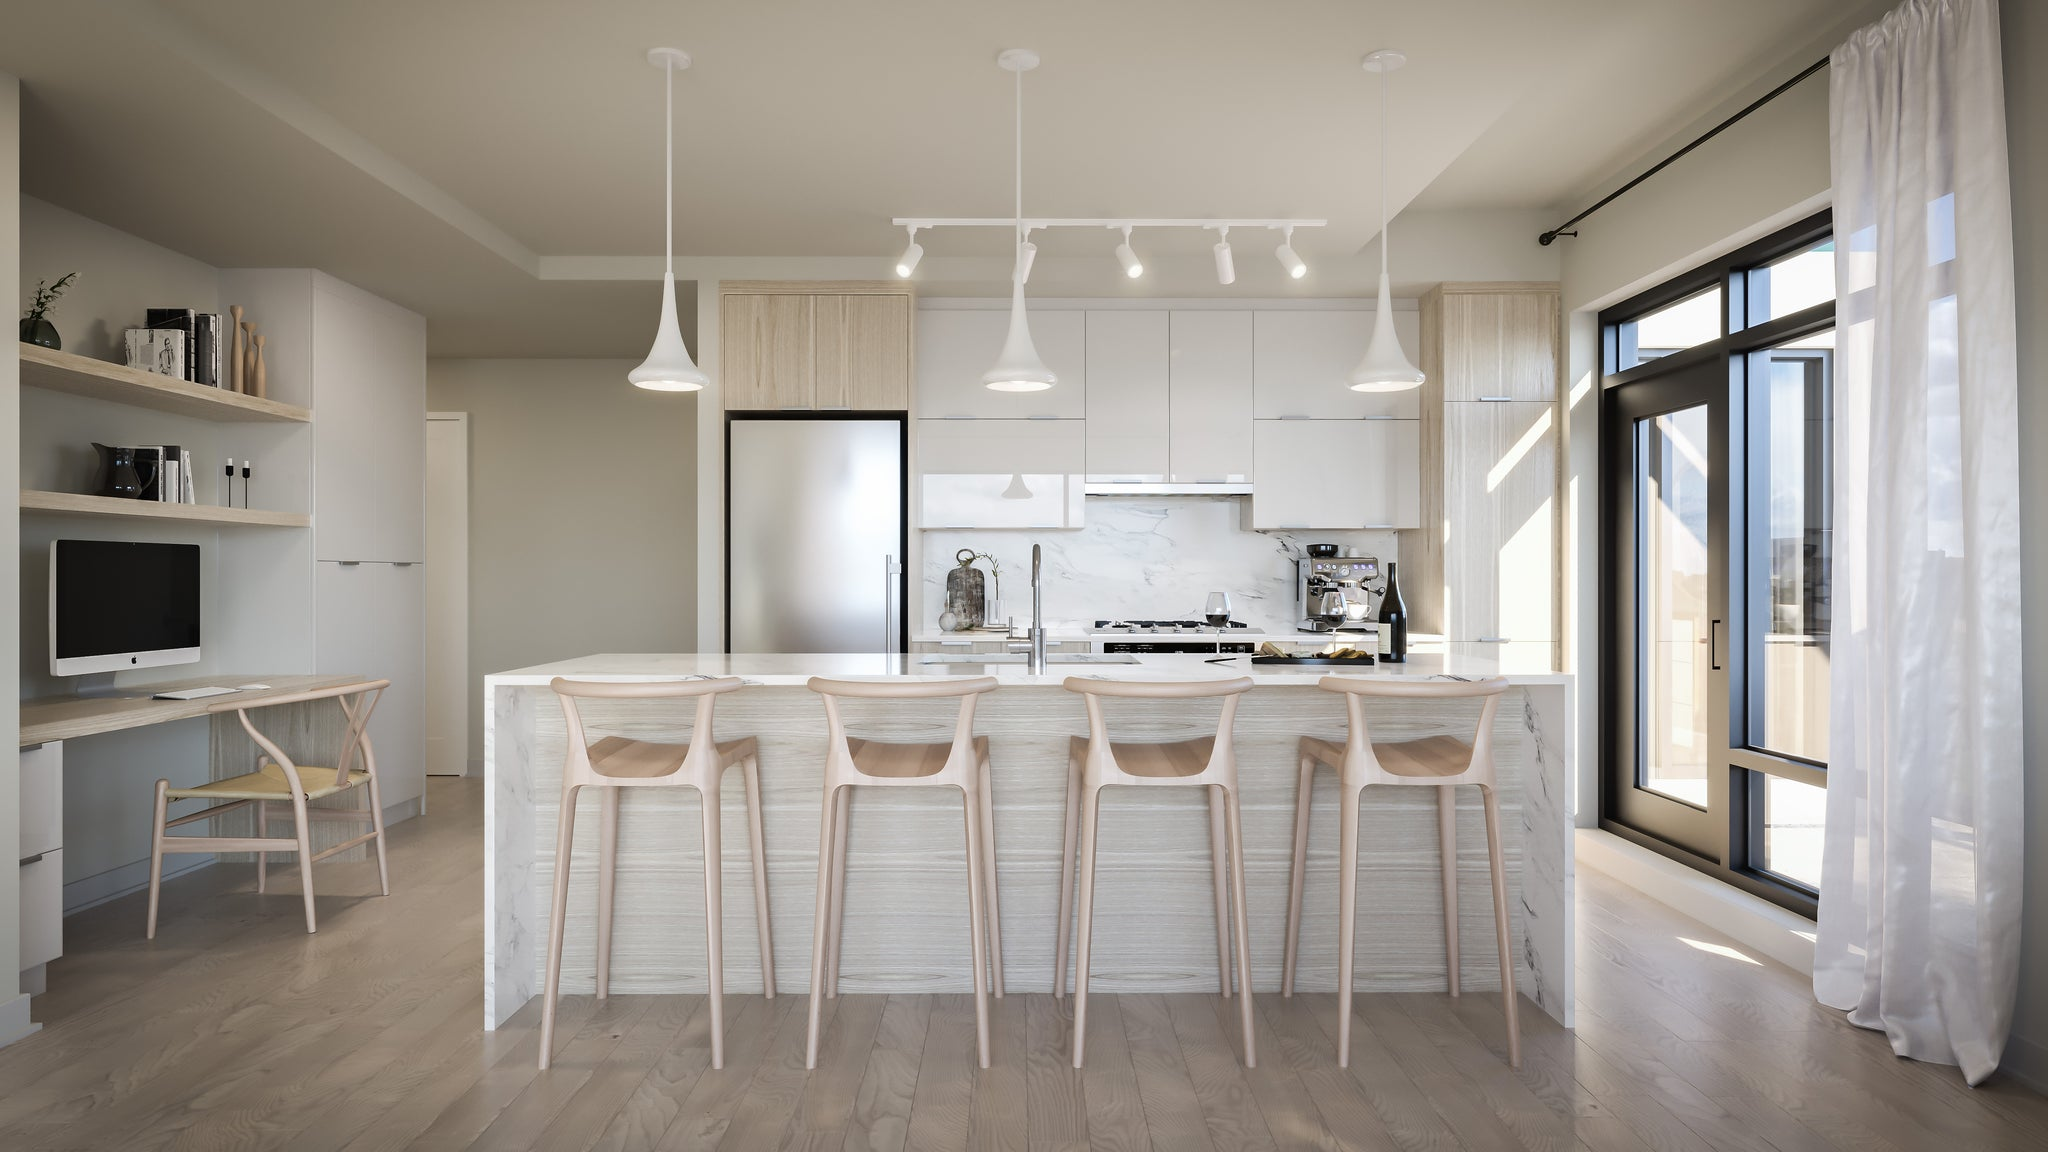 Kitchen Interior Design with island, barstools and pendant lights